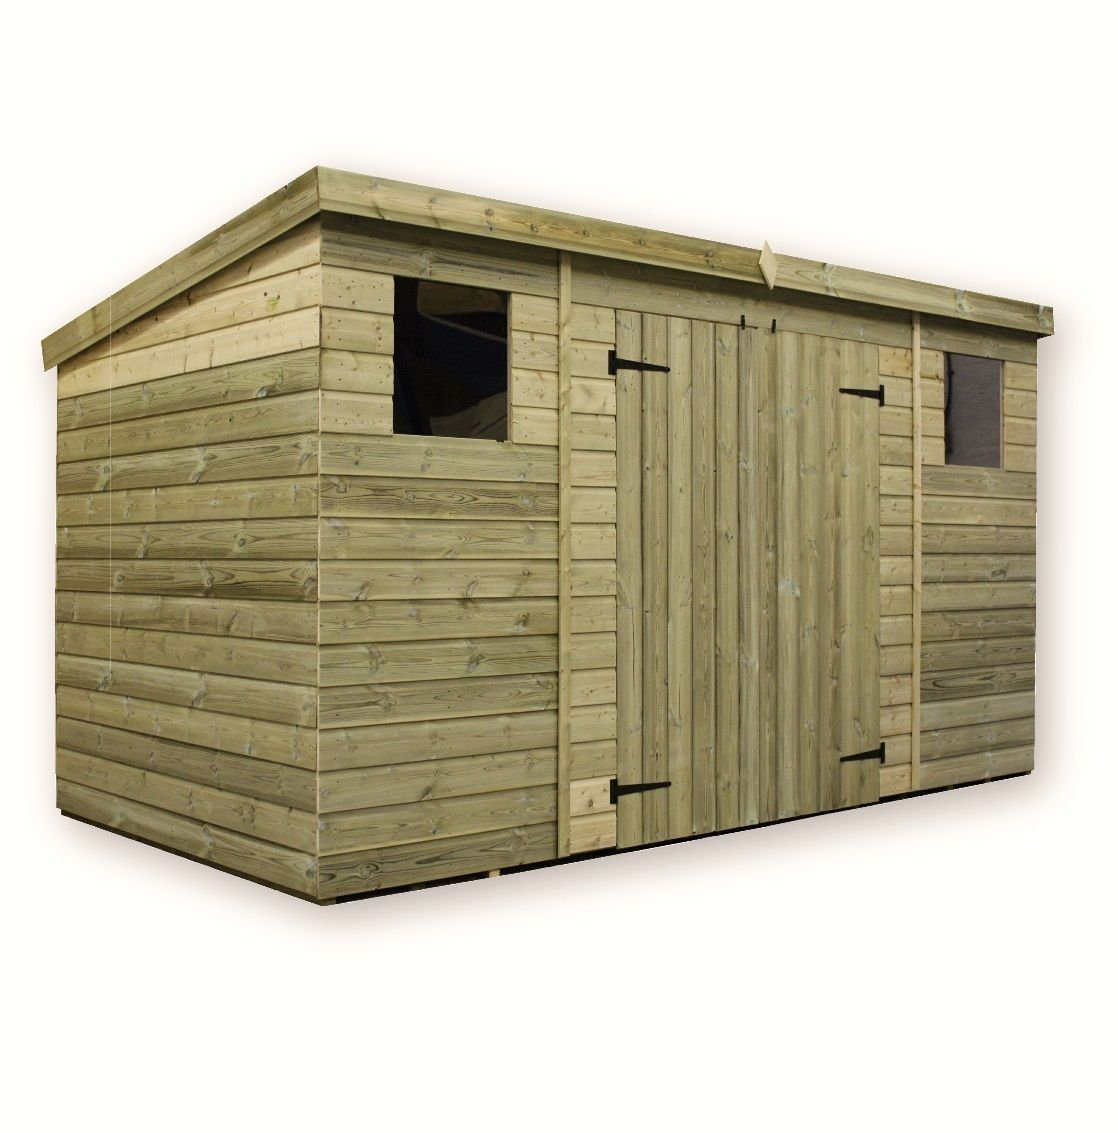 Wooden Garden Shed 10x8 12x8 14x8 Pressure Treated Tongue And Groove Pent Shed Ebay Wooden Sheds Shed Plans Diy Shed